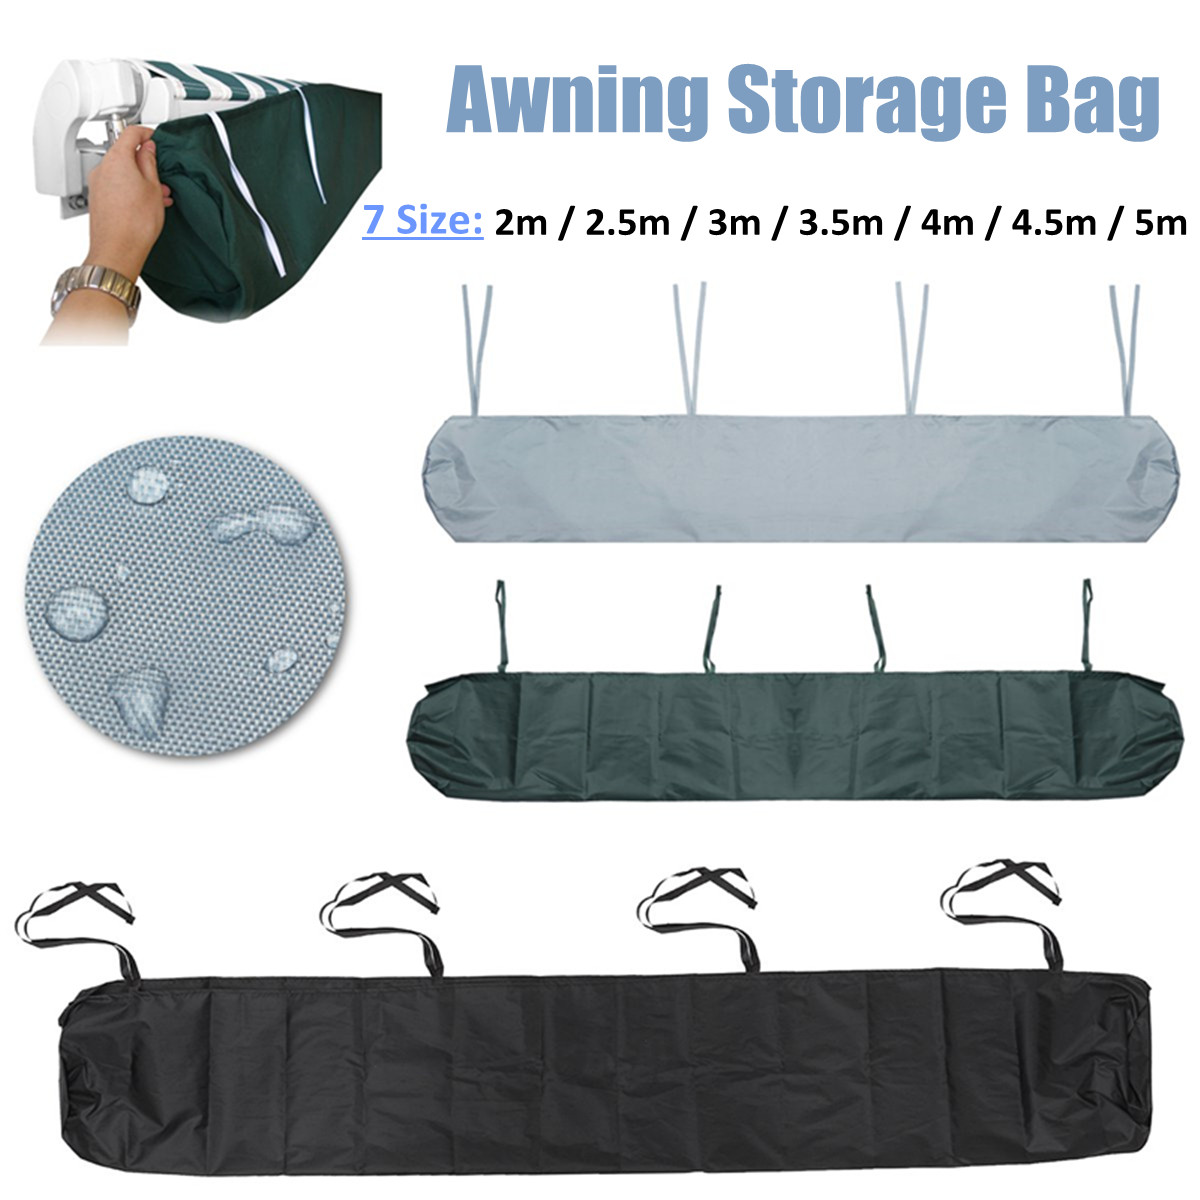 Details About 2m 5m Patio Awning Winter Storage Bag Rain Weather Cover Protector Sun Canopy